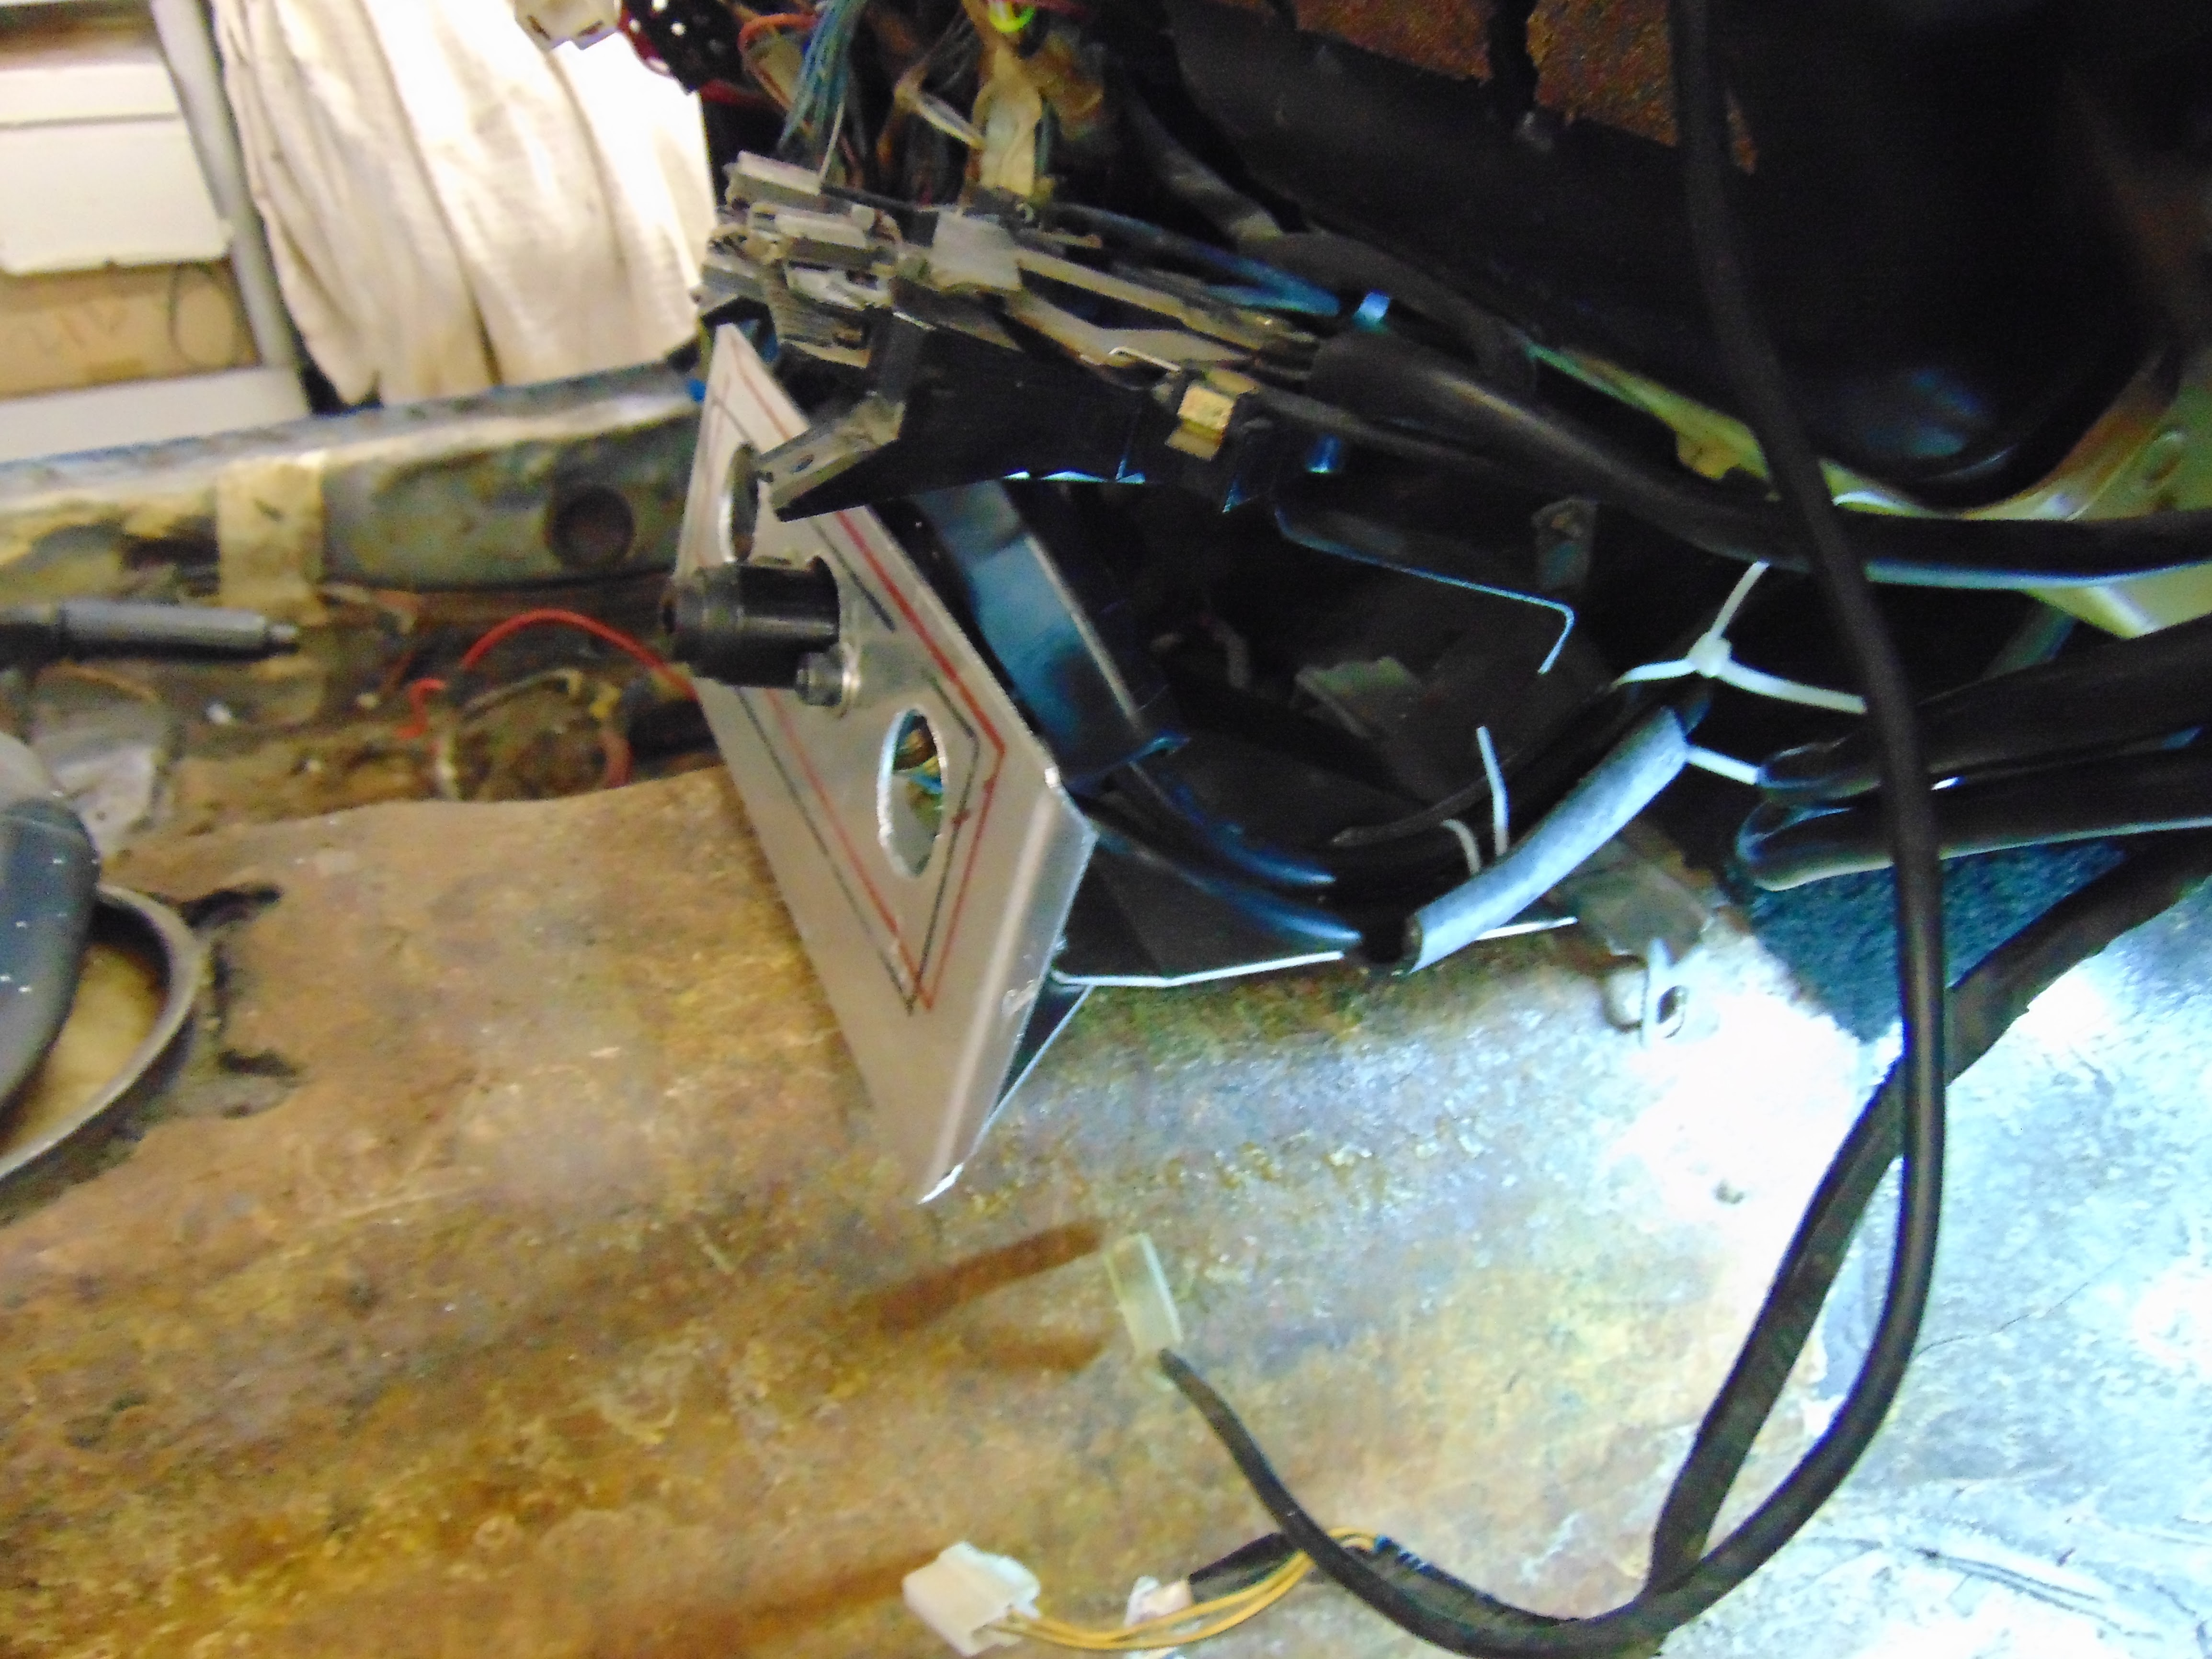 1984 Porsche 944 Street Track Car Electrical Refurbishment And Was The Wiring I Salvaged From Previous Lamps Spliced Wire Next Reliability Removal Of Existing Hacks As With 928 Job One Is To Remove Every Friction Type Connection Clean Off